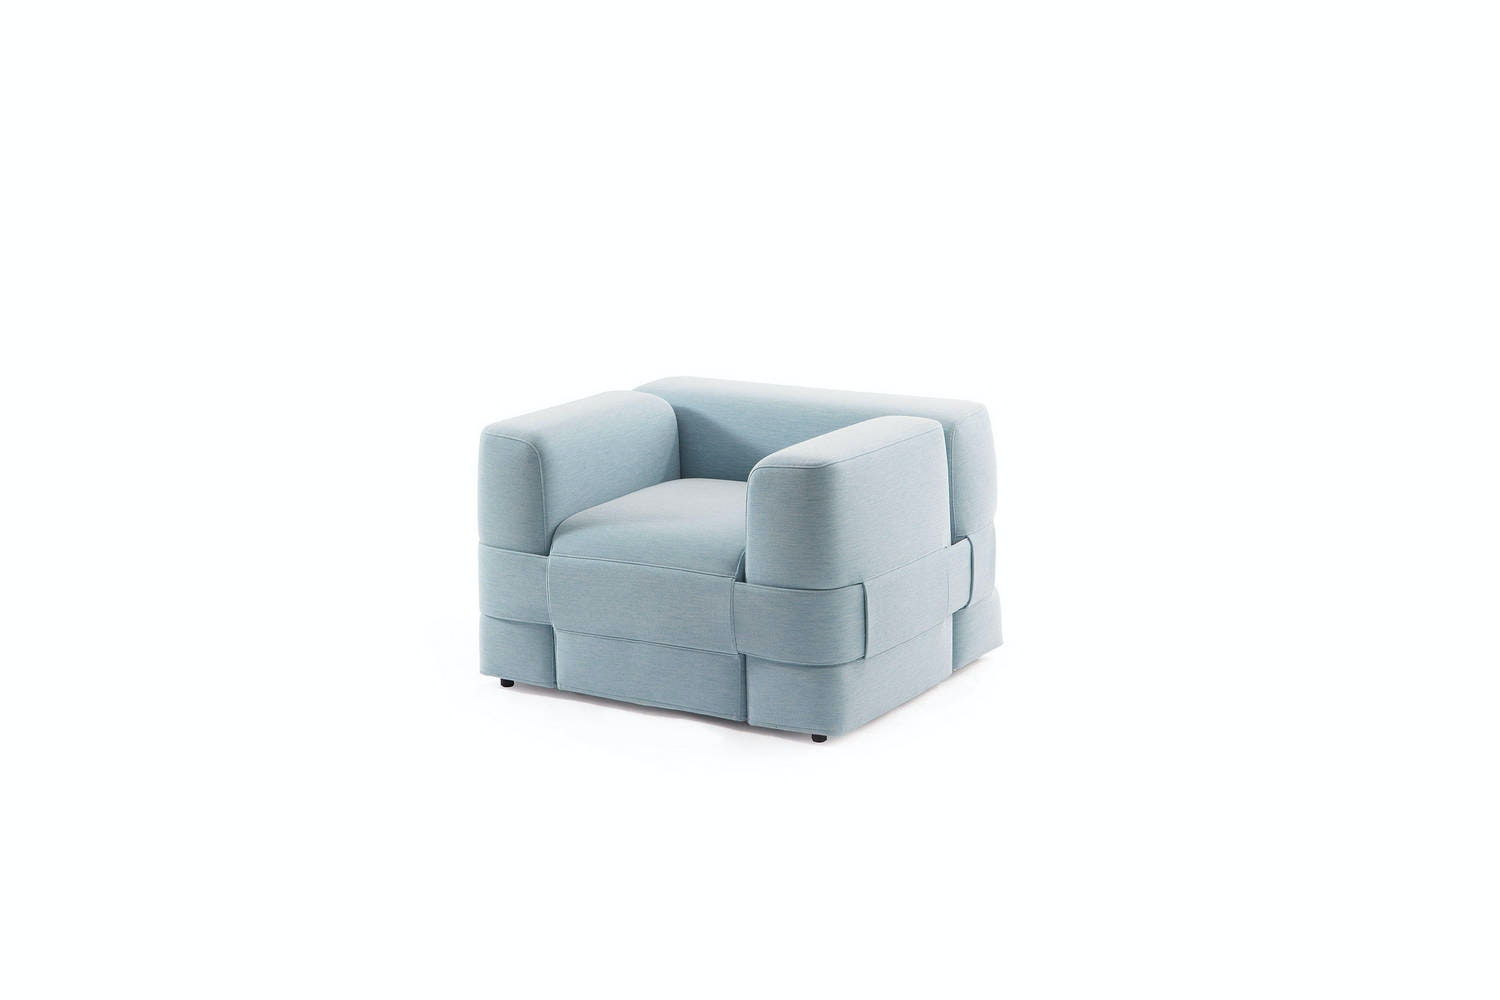 932 Armchair by Mario Bellini for Cassina